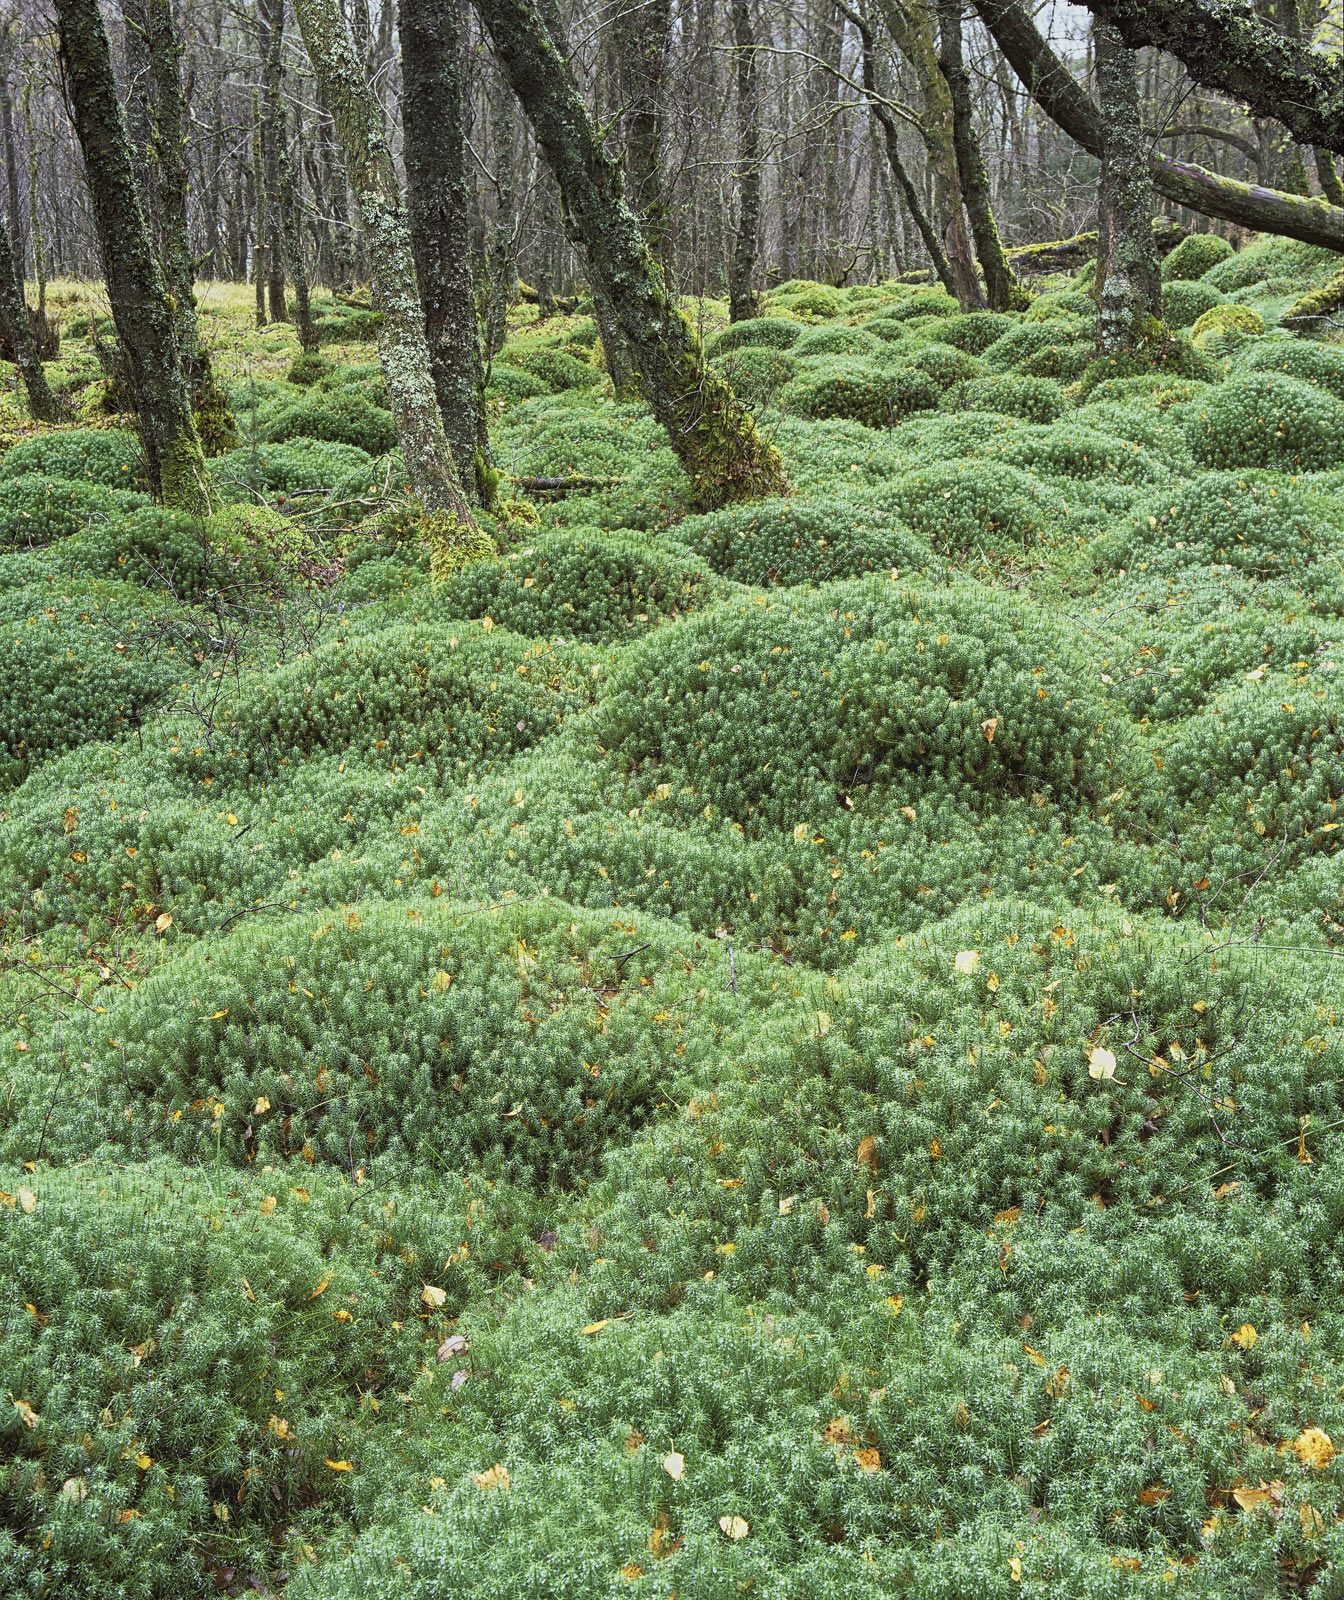 Like a lumpy old mattress this wonderful bed of spongy star moss had covered over the roots of old silver birch trees in this...